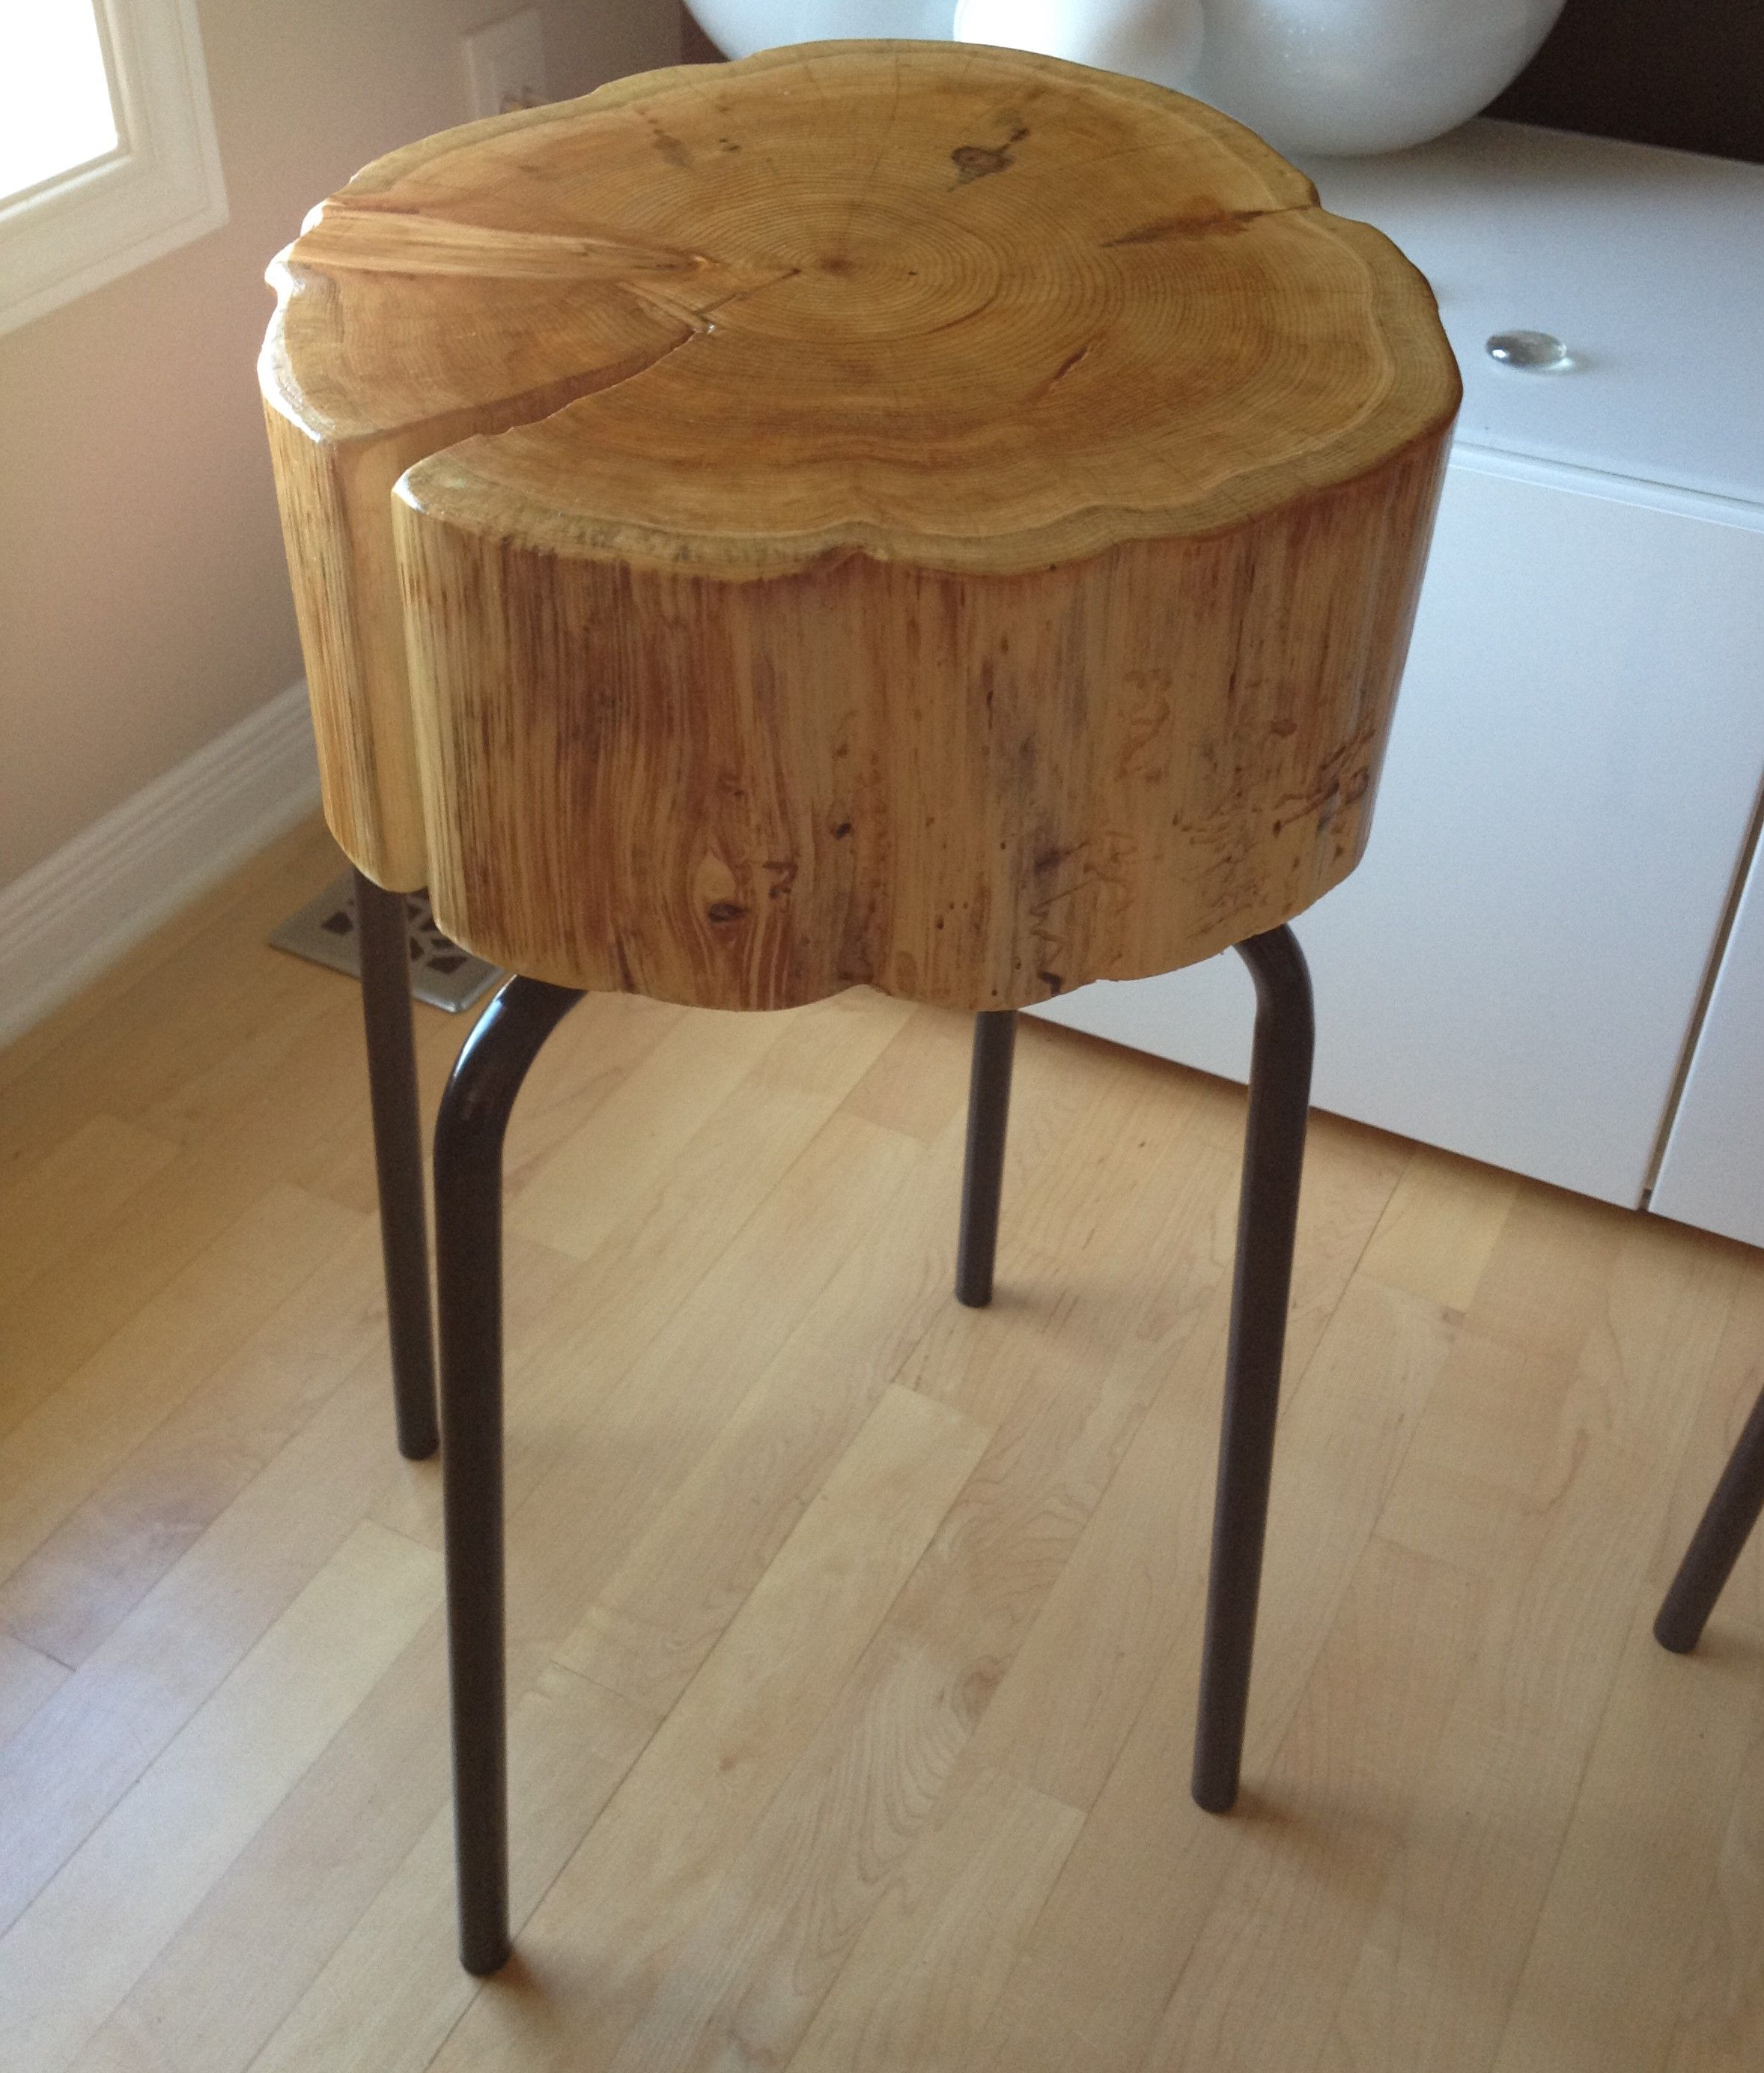 End Tables With Metal Legs Stump End Table Cedar Stump End Table With Metal Legs